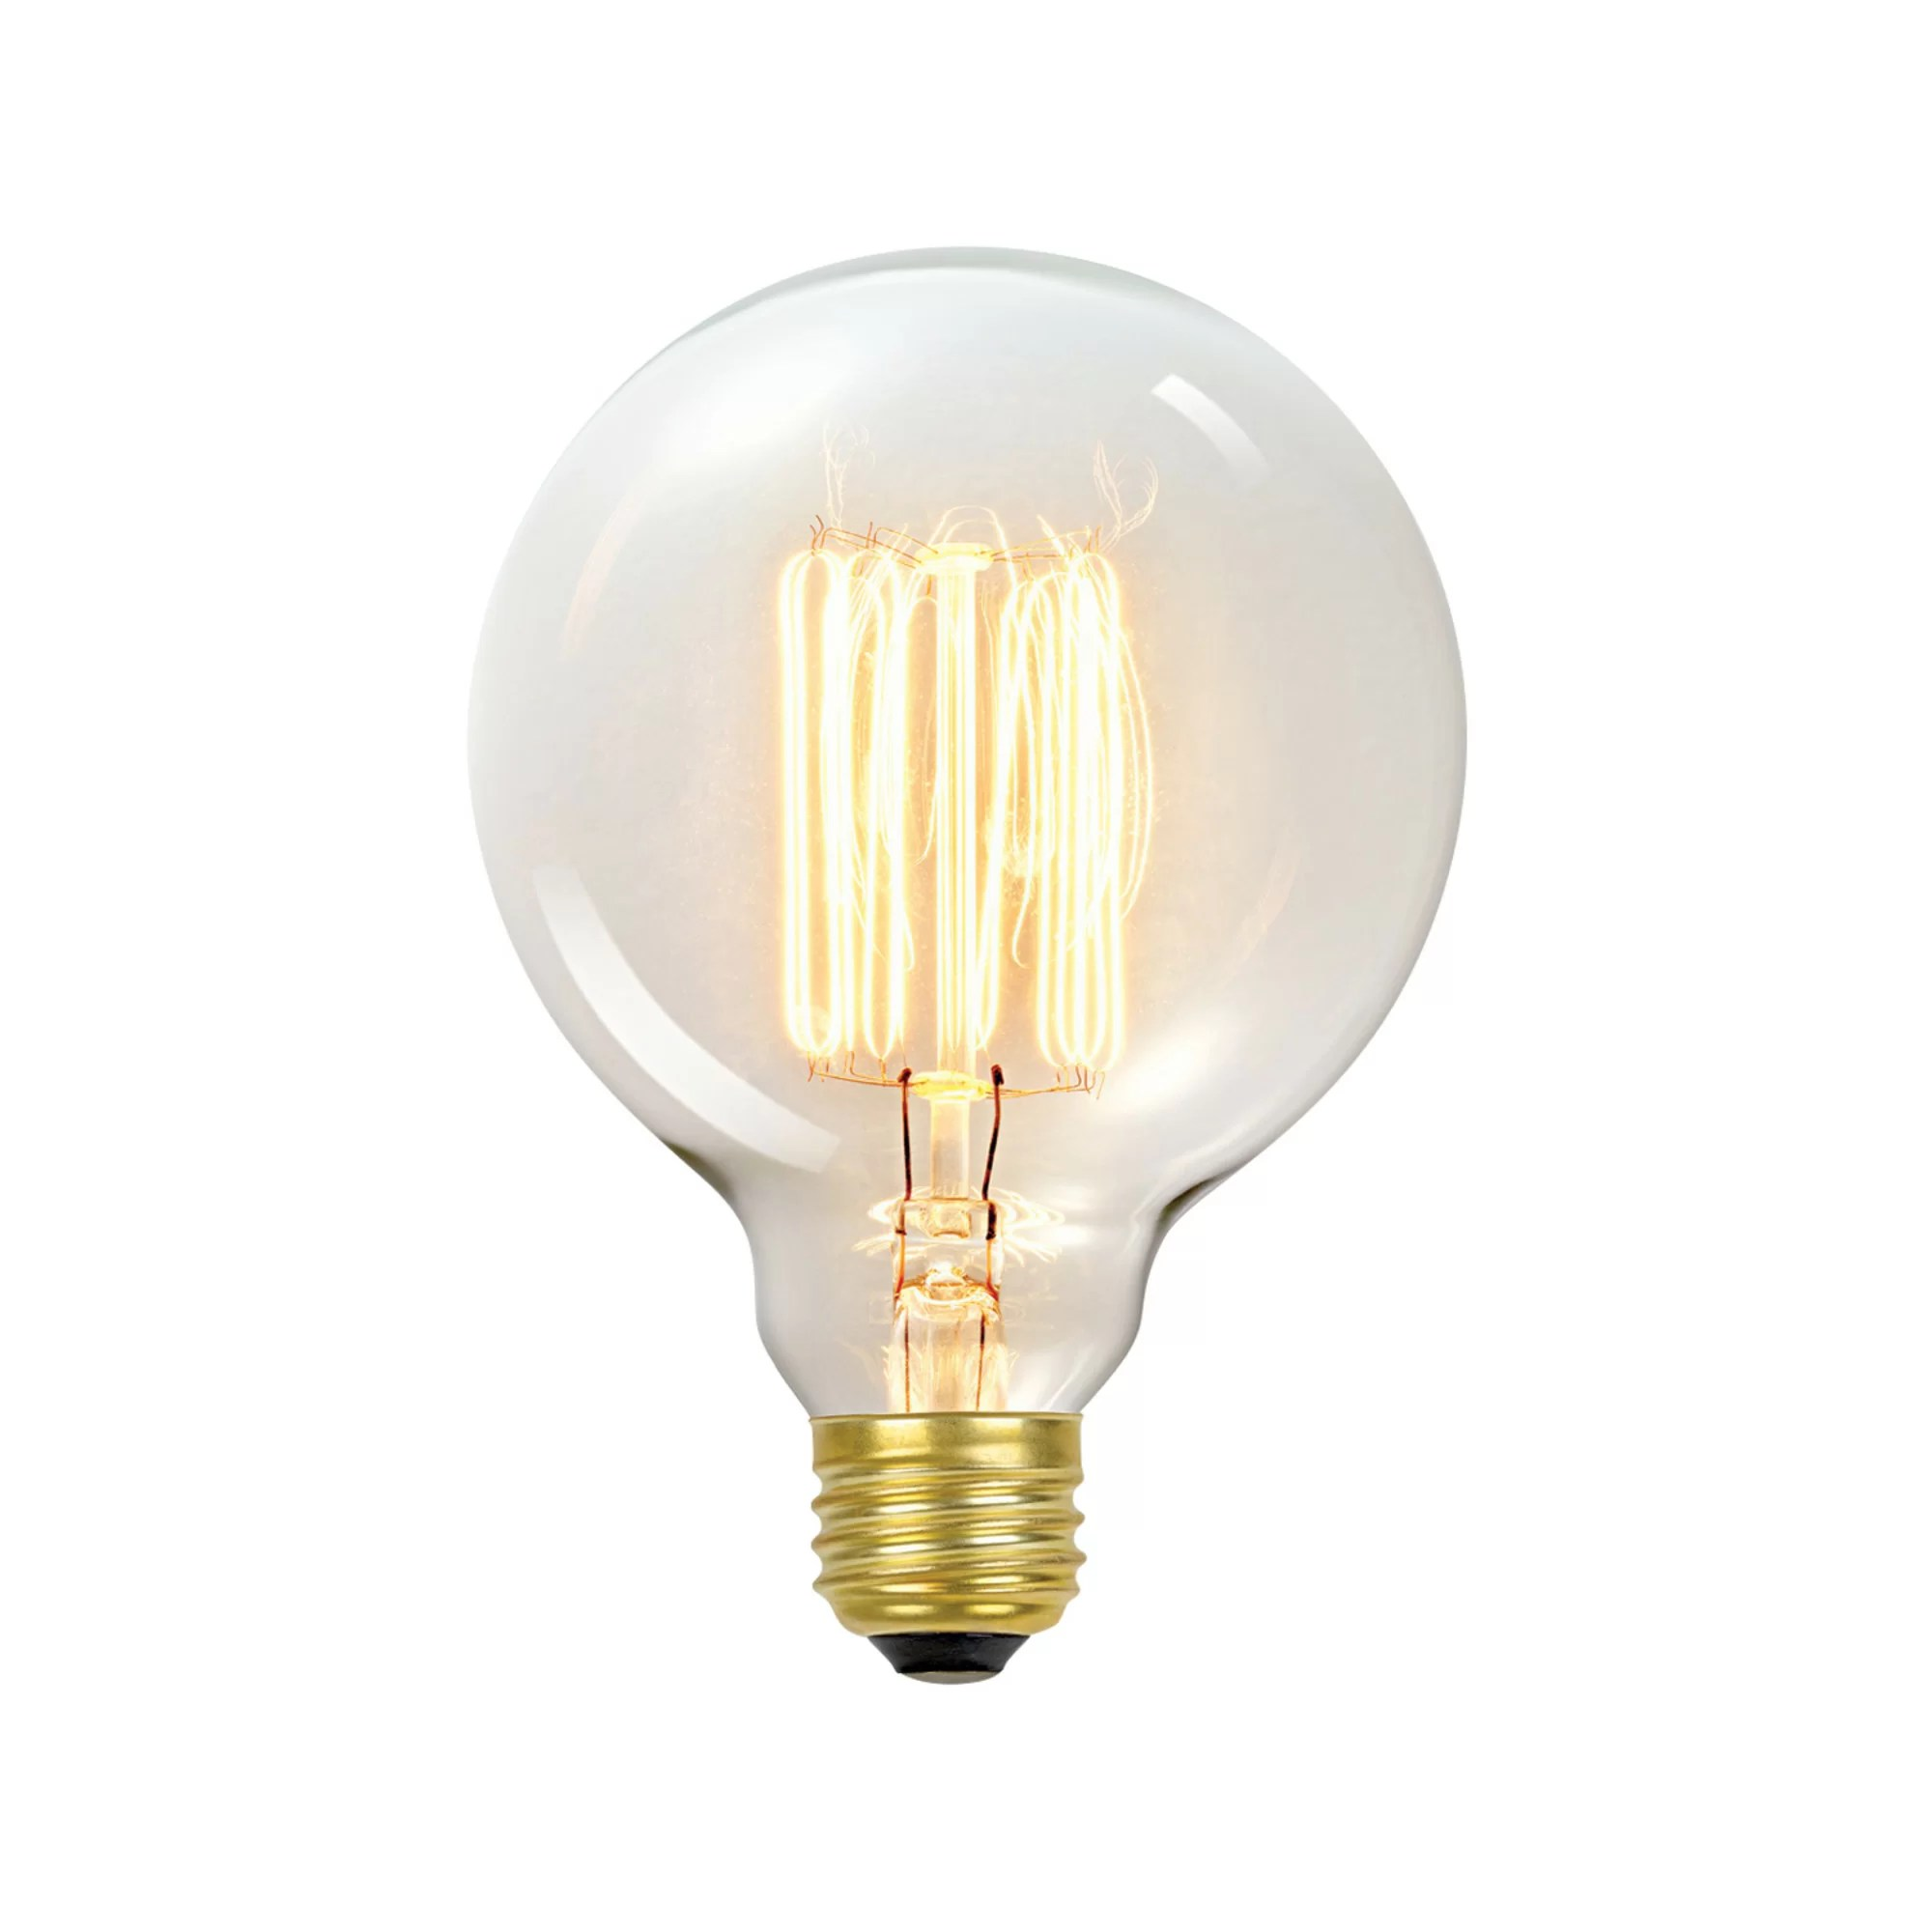 60w Light Bulb 60 Watt G30 Incandescent Dimmable Light Bulb Warm White 2700k E26 Medium Standard Base